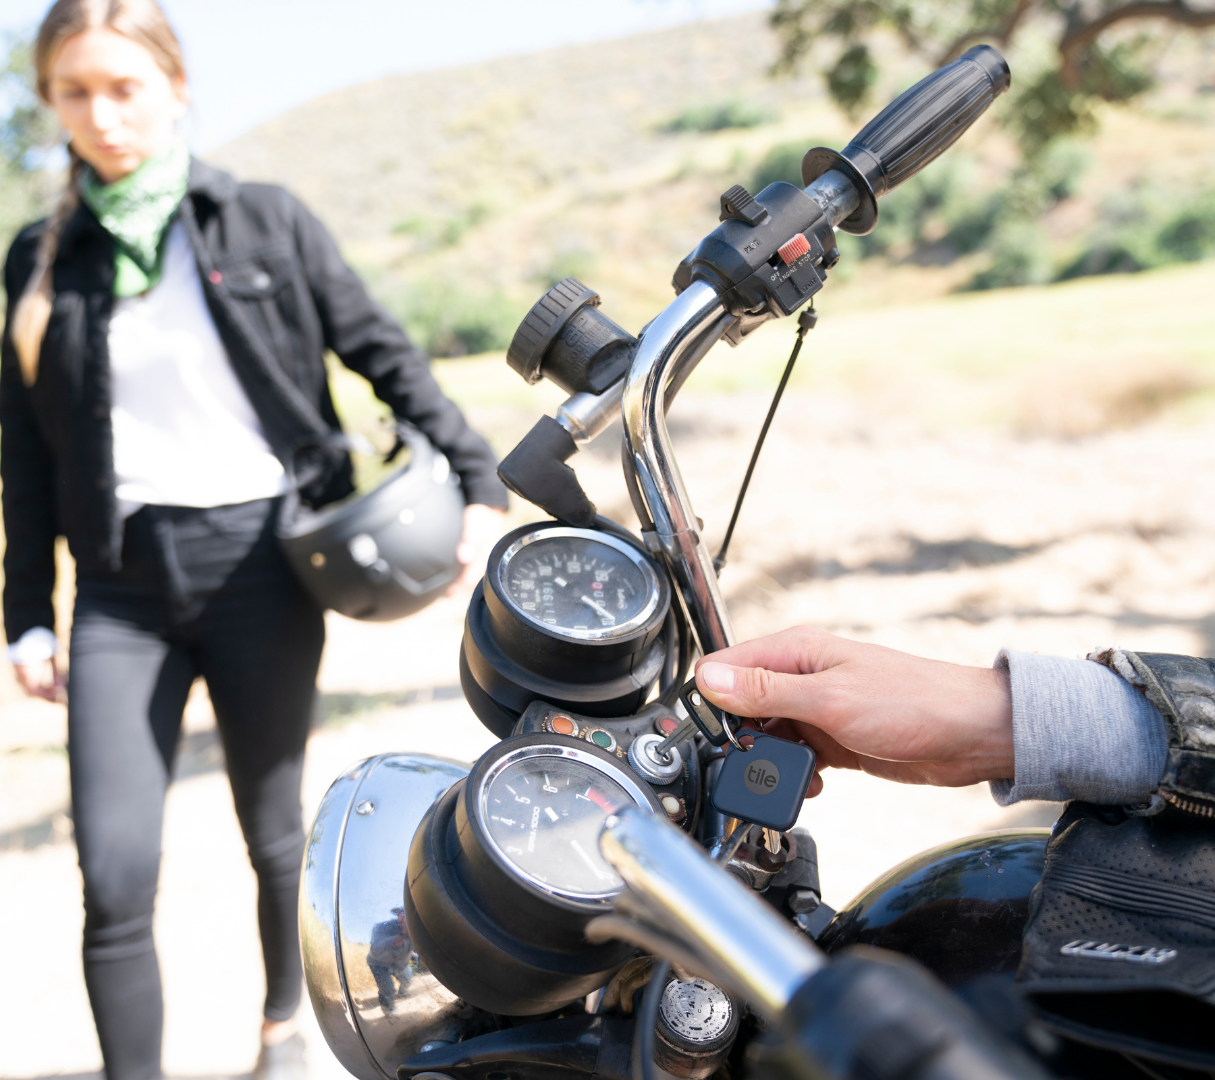 Protect Your Motorcycle with a Tracking Device